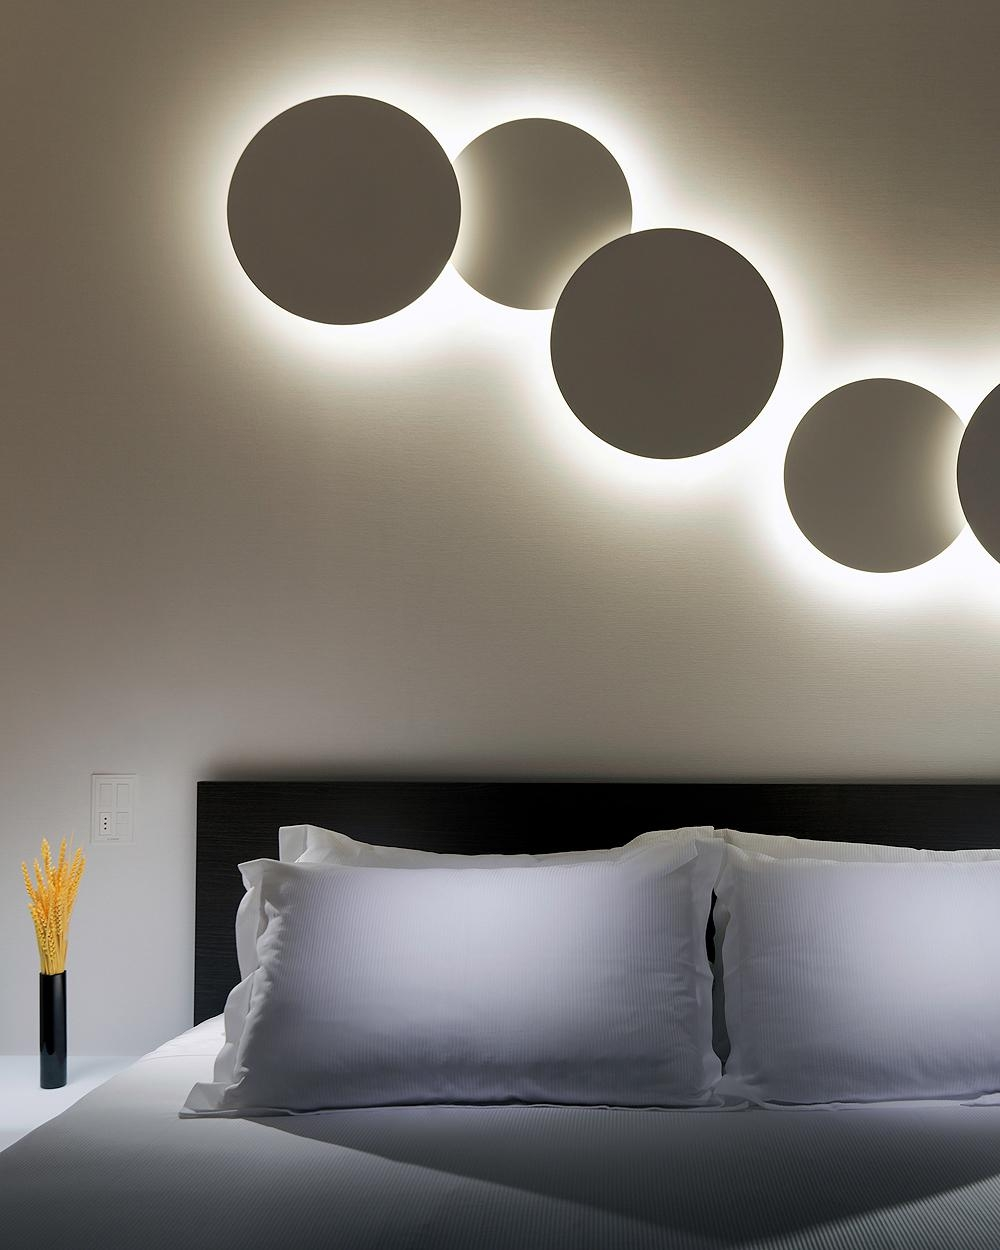 Puck 5468 Wall Art Quadruple Lightvibia | Interior Deluxe In Wall Art Lighting (Image 16 of 20)